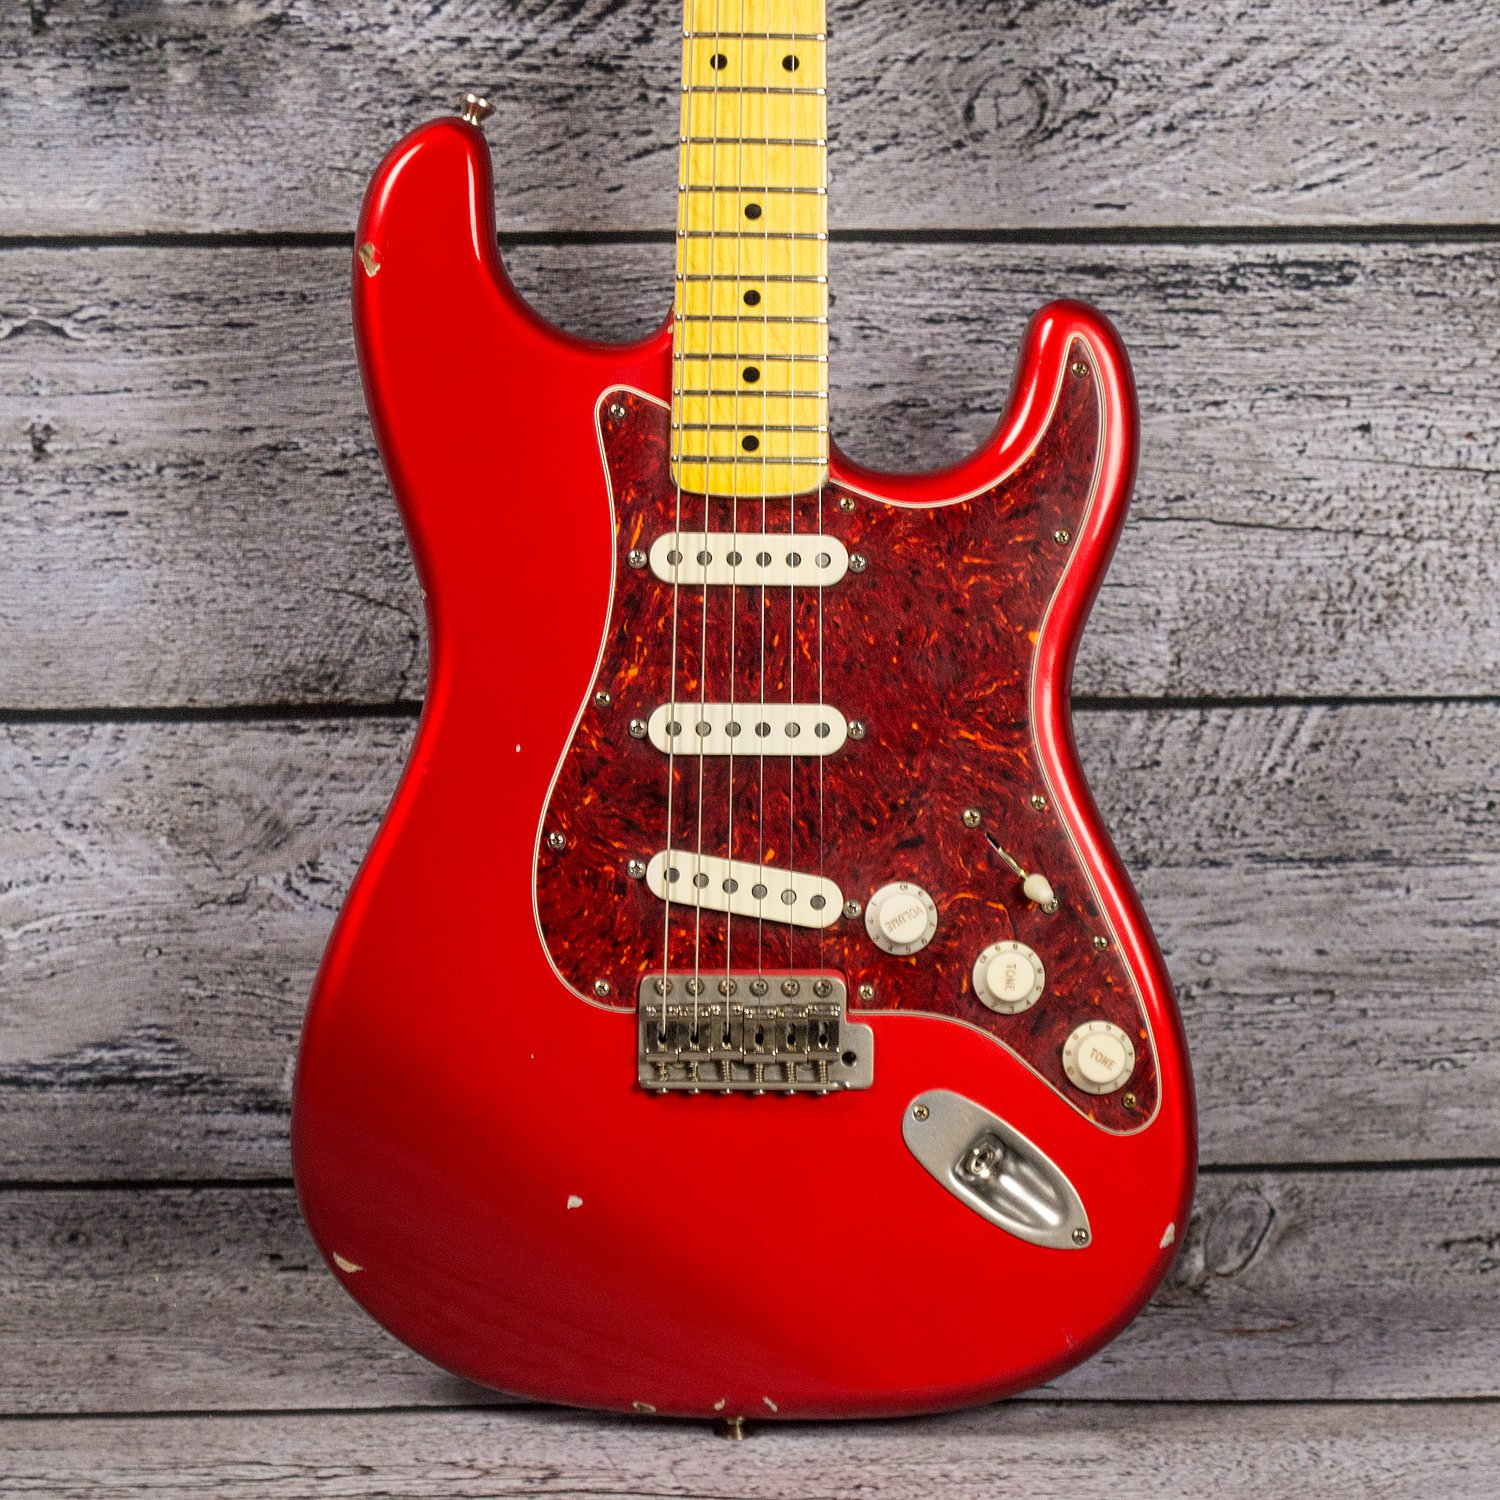 Nash S67 - Candy Apple Red (Matching Headstock)